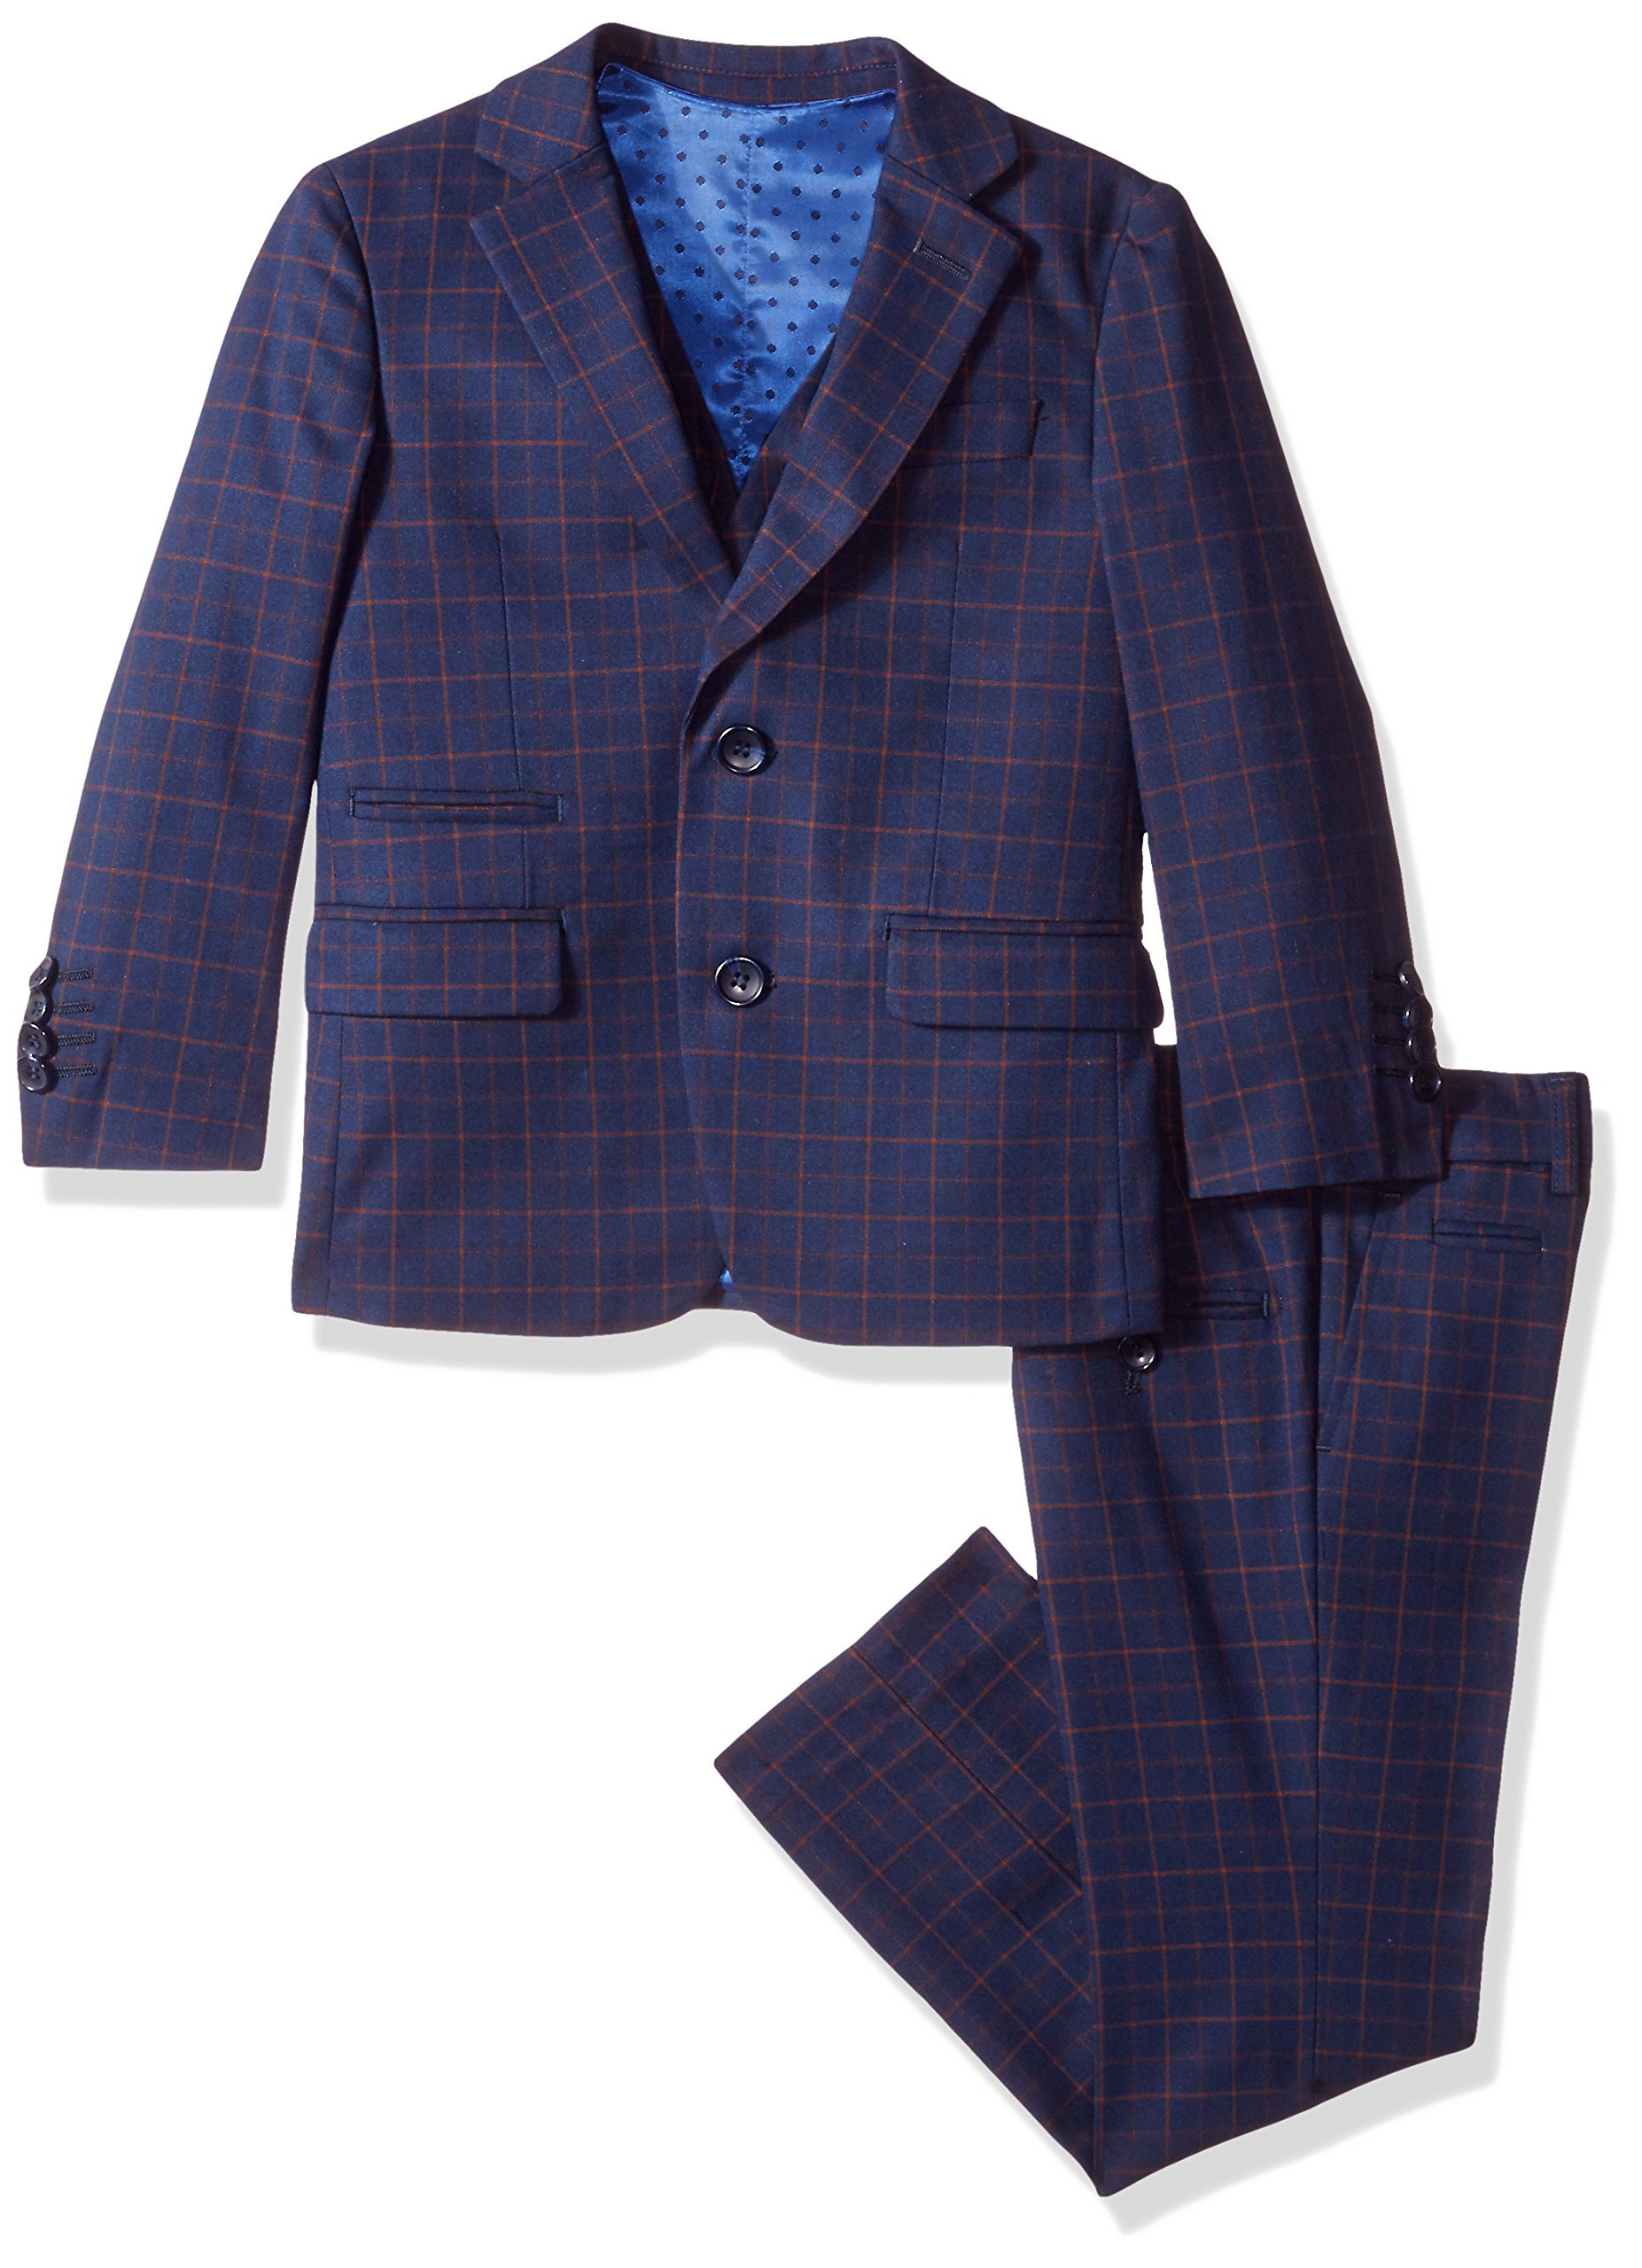 Isaac Mizrahi Big Boys' 3pc Vested Check Suit, Navy/Rust, 16 by Isaac Mizrahi